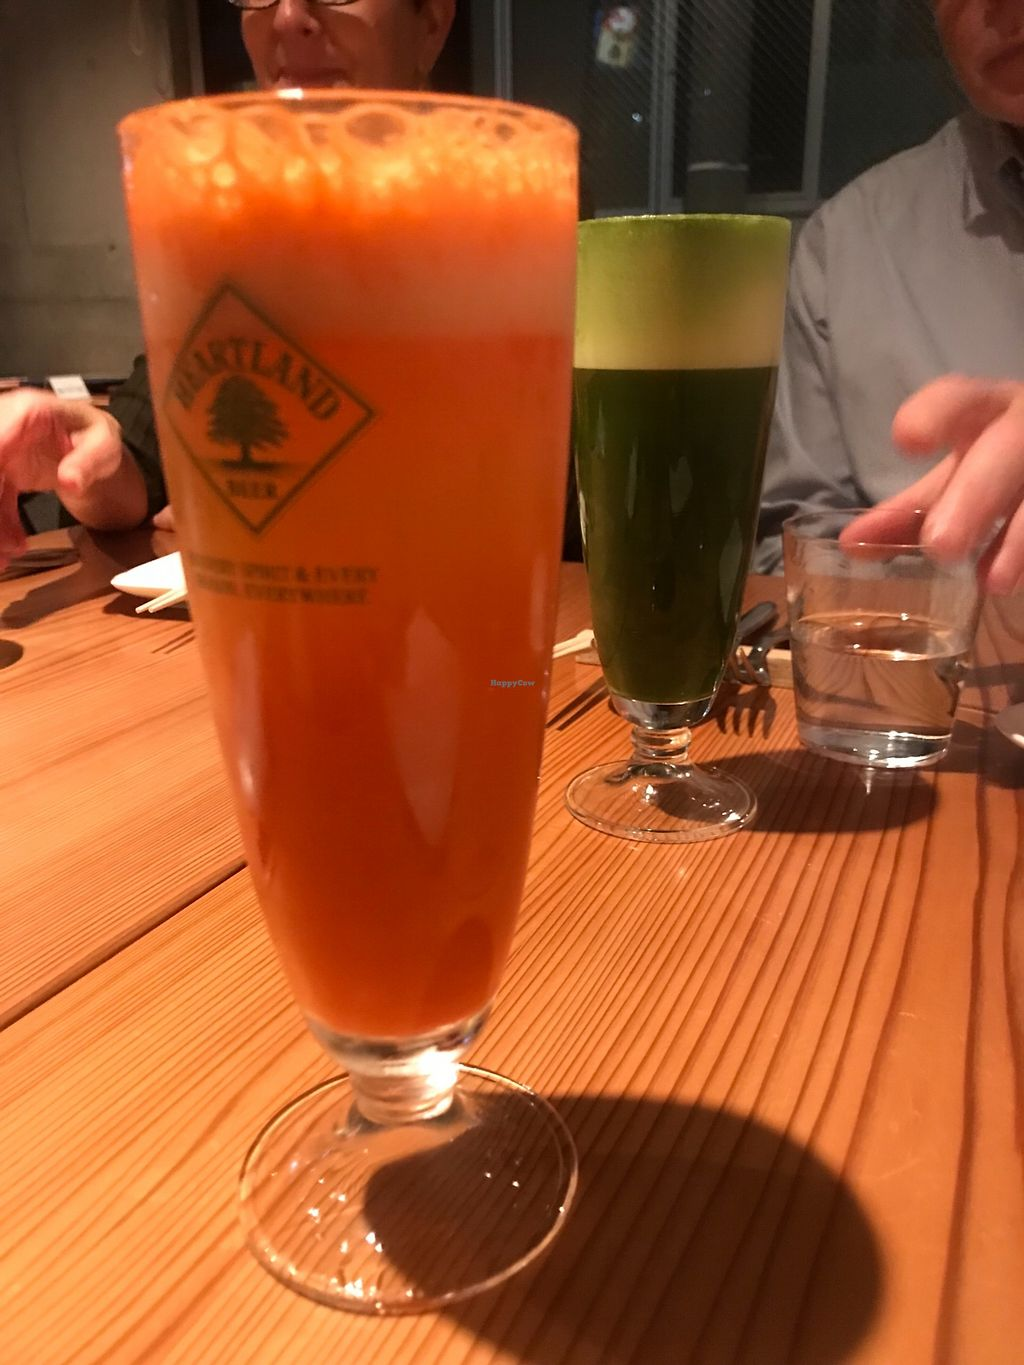 """Photo of Ain Soph.Ginza  by <a href=""""/members/profile/DTS"""">DTS</a> <br/>Carrot cold press beer <br/> December 1, 2017  - <a href='/contact/abuse/image/23681/331100'>Report</a>"""